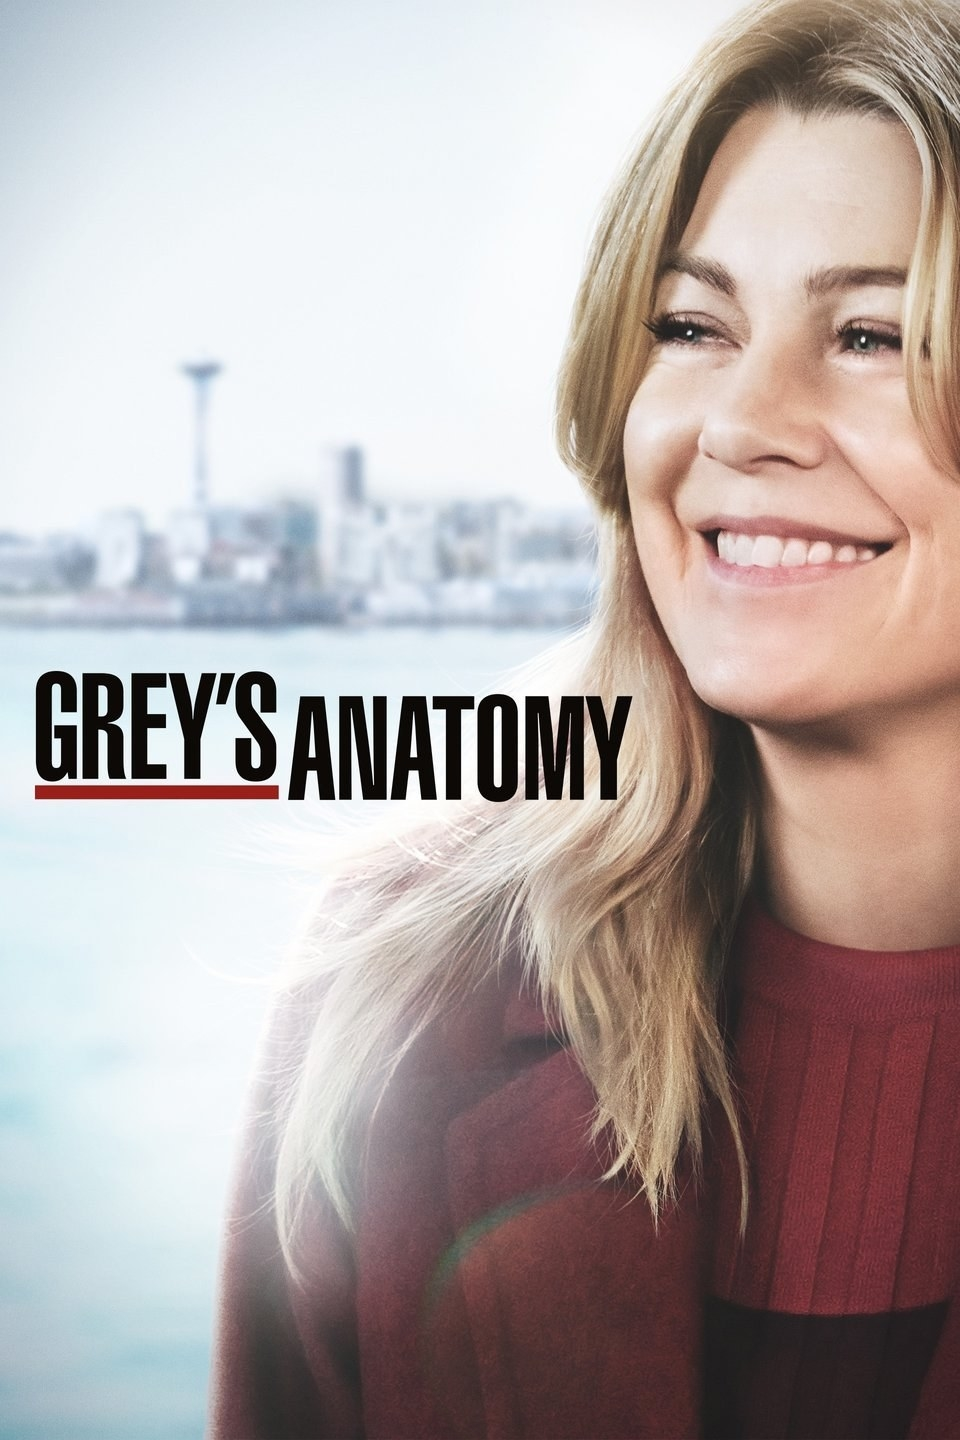 Congrats to Shonda Rhimes for having the  longest-running primetime medical drama  in TV history! - Grey's Anatomy  broke the record last night with it's 332nd episode.